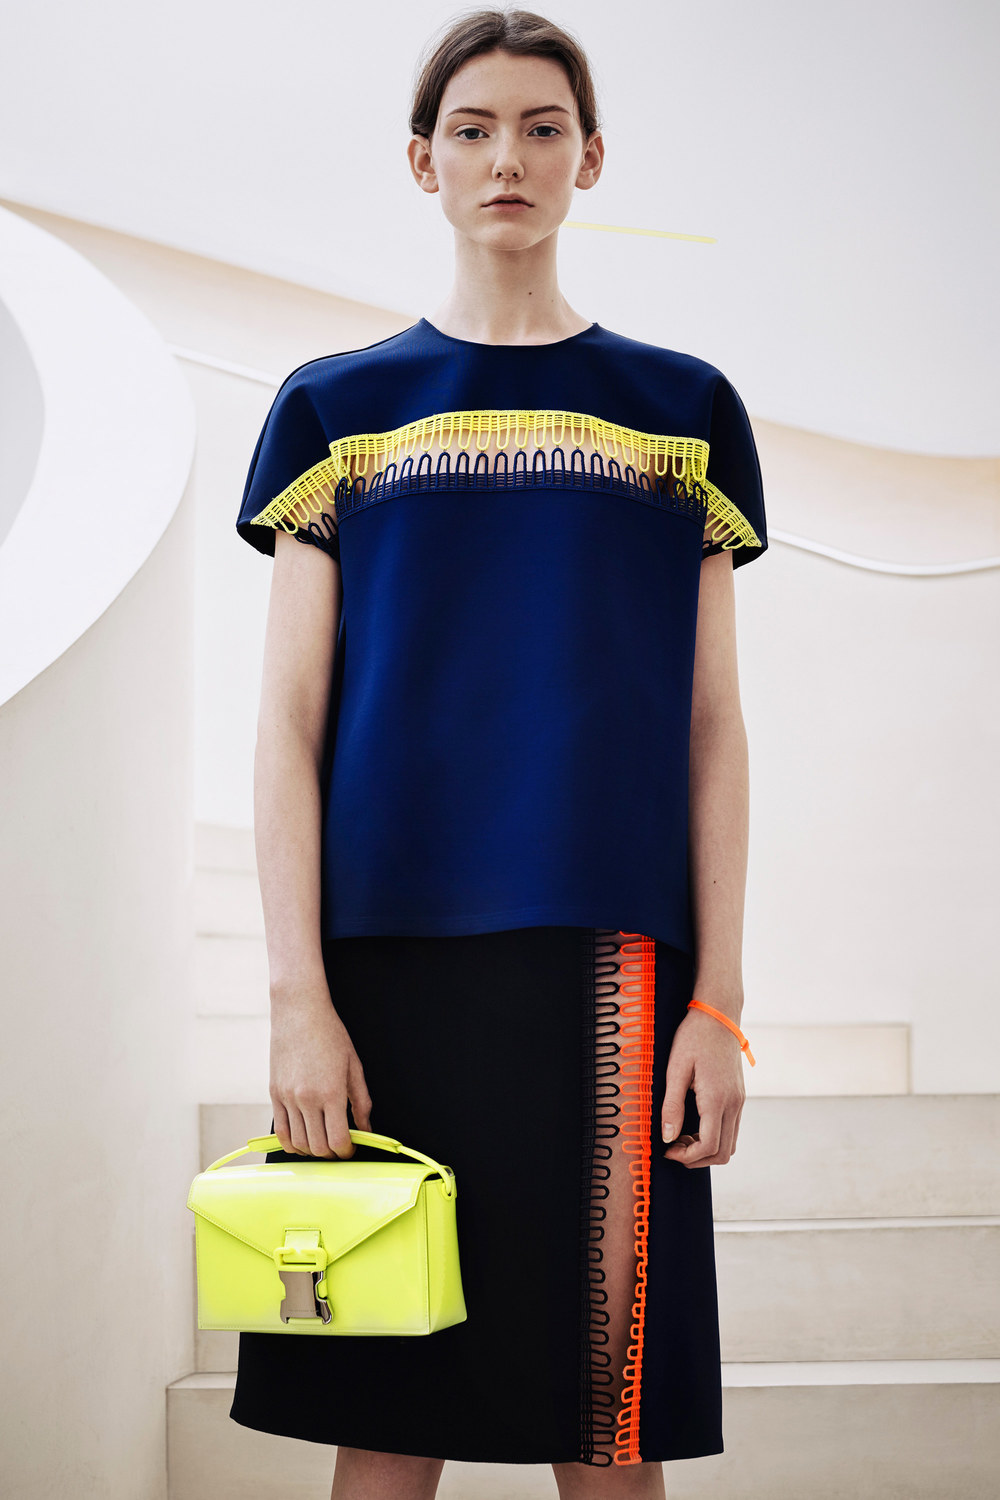 christopher-kane-pre-fall-2016-lookbook-05.jpg